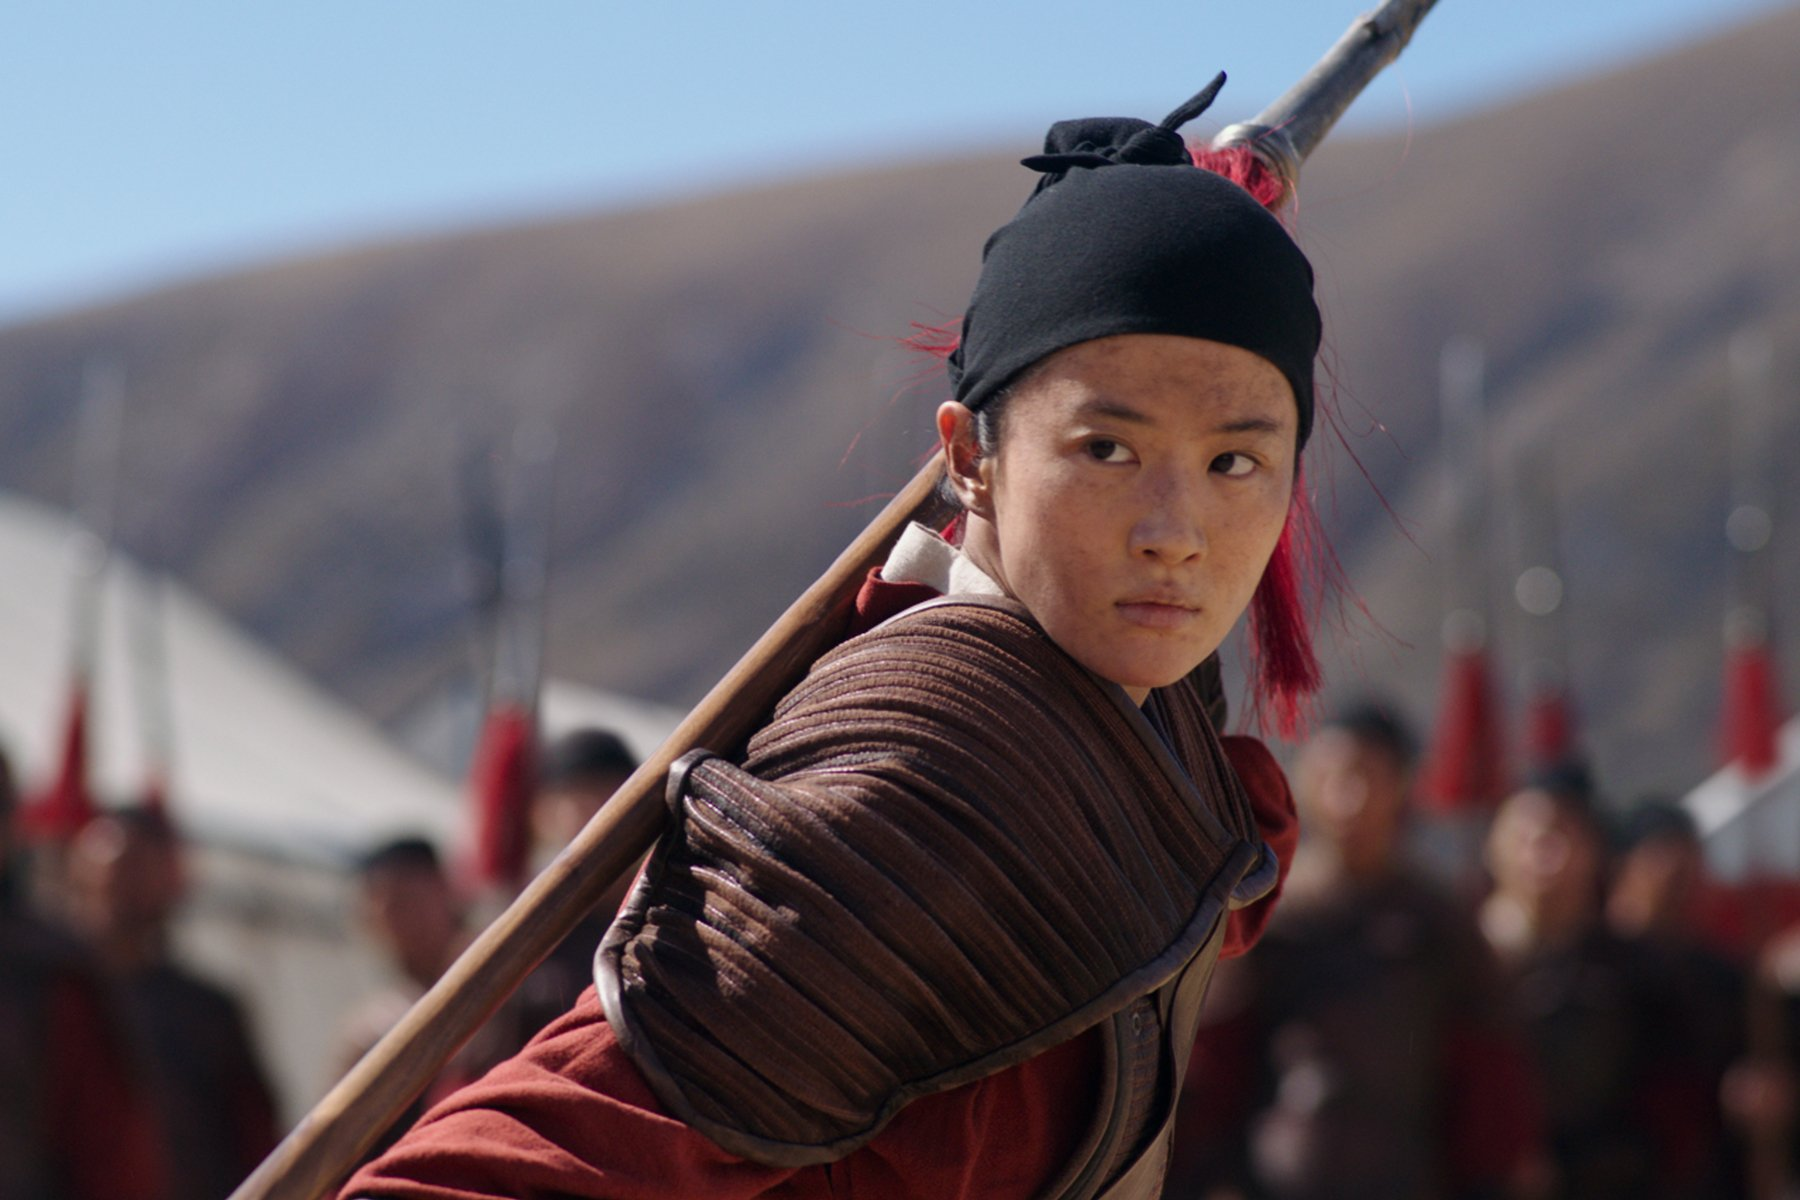 With Premier Access of 'Mulan,' Disney+ Brings a Cinematic Experience to Your Home